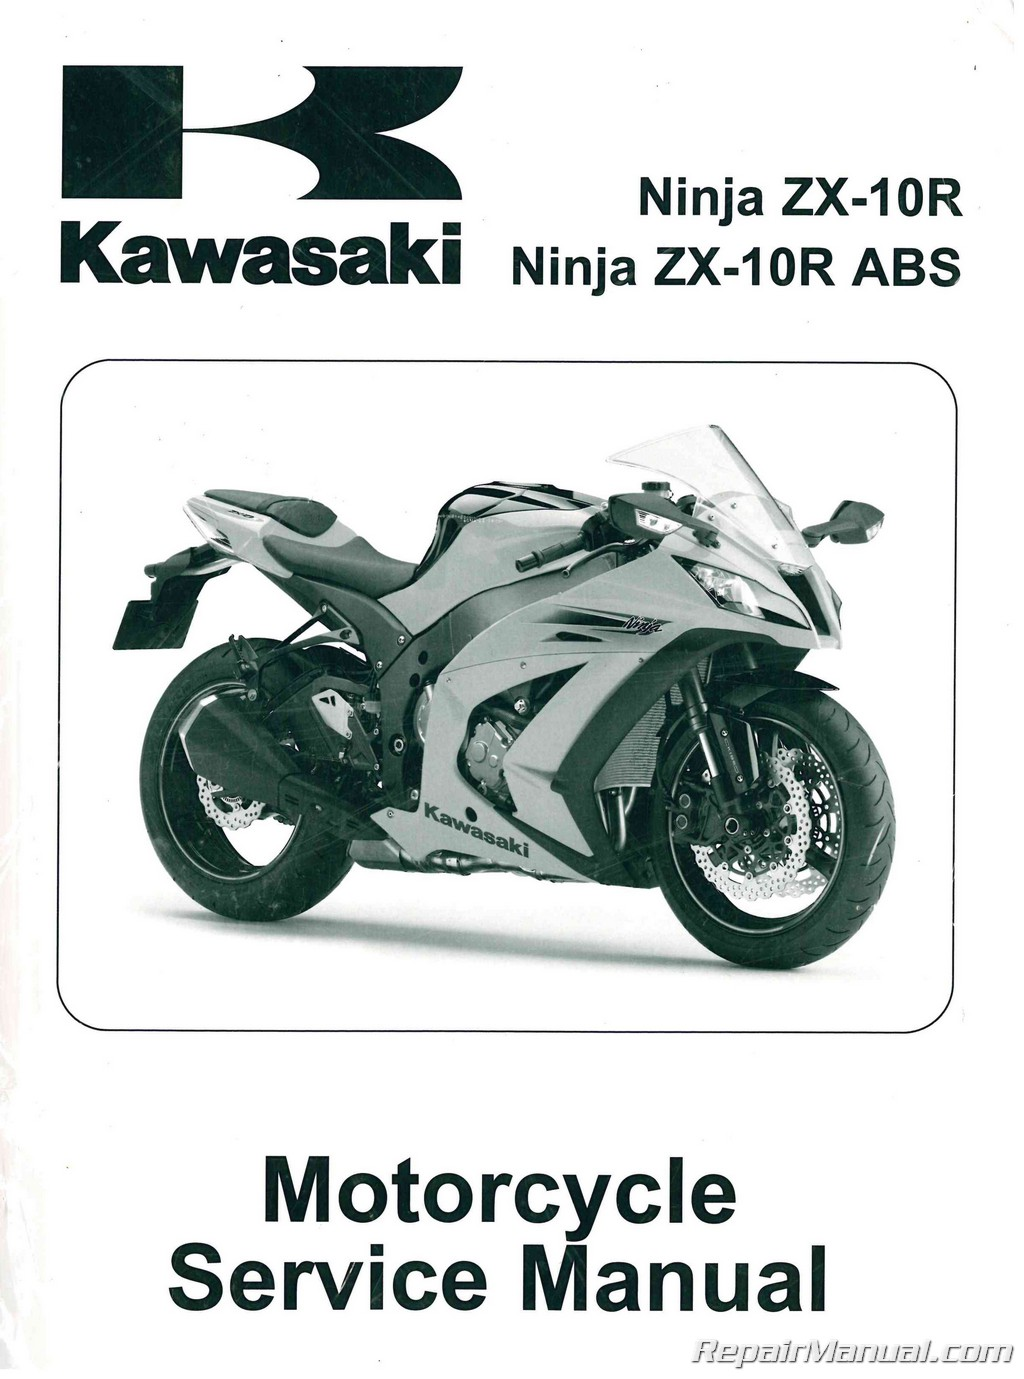 kawasaki ninja zx 10r manual 2011 2014 rh repairmanual com 2009 zx10r user manual